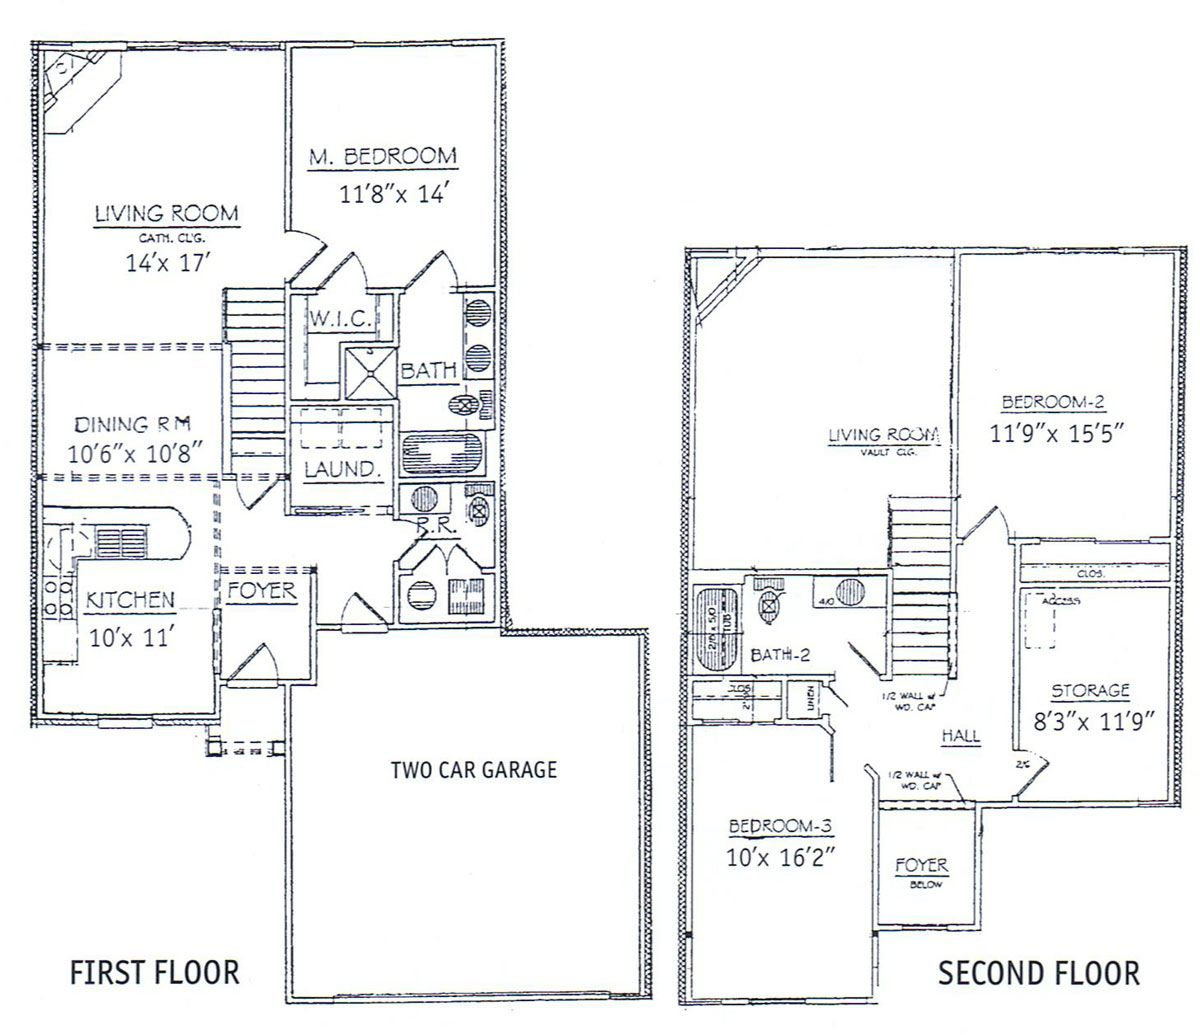 3 bedrooms floor plans 2 story bdrm basement the two Two bedroom floor plans